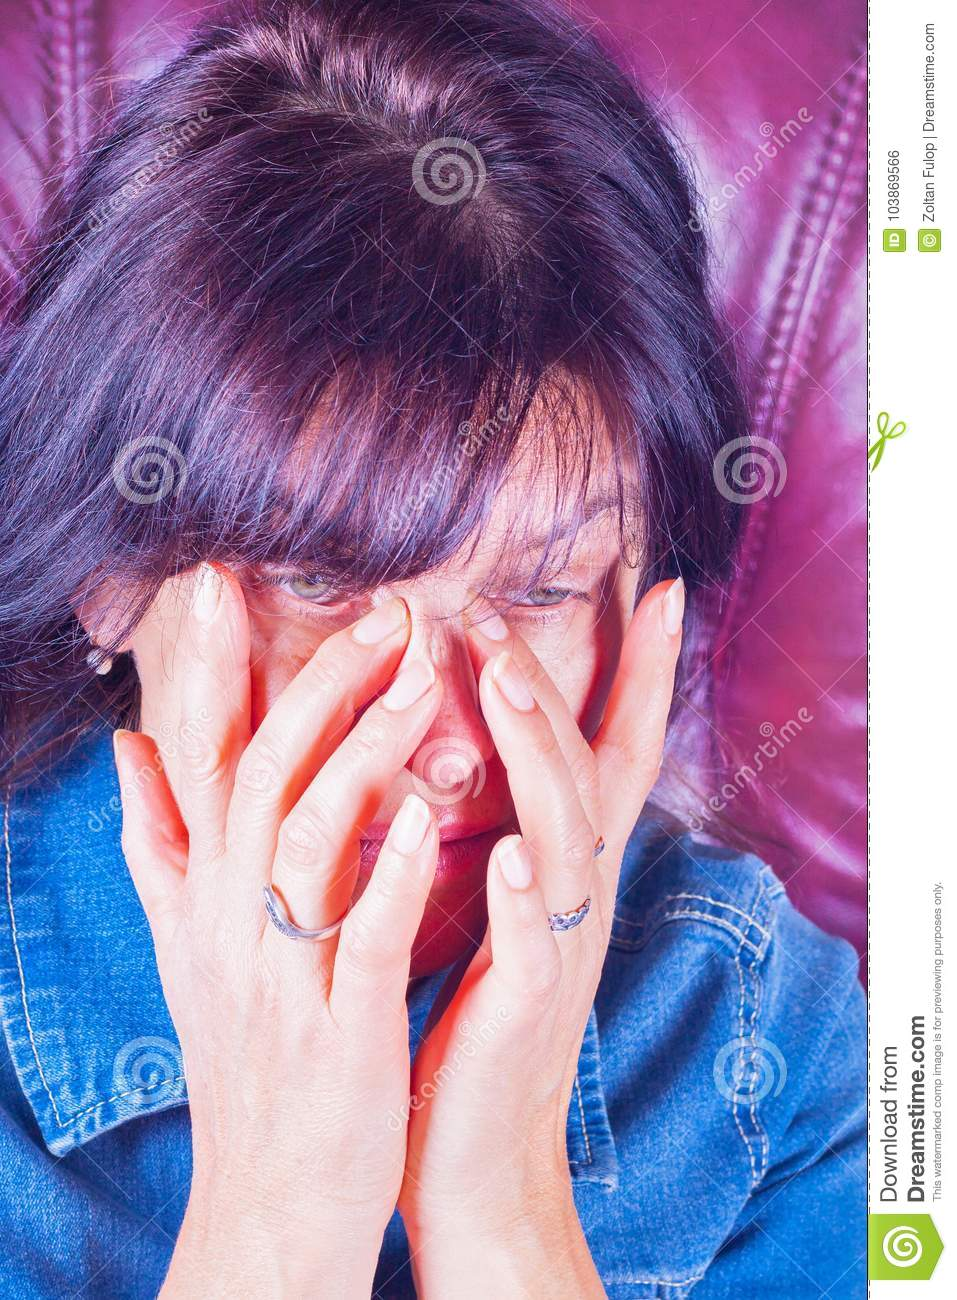 A tired woman rubbing her eyes.